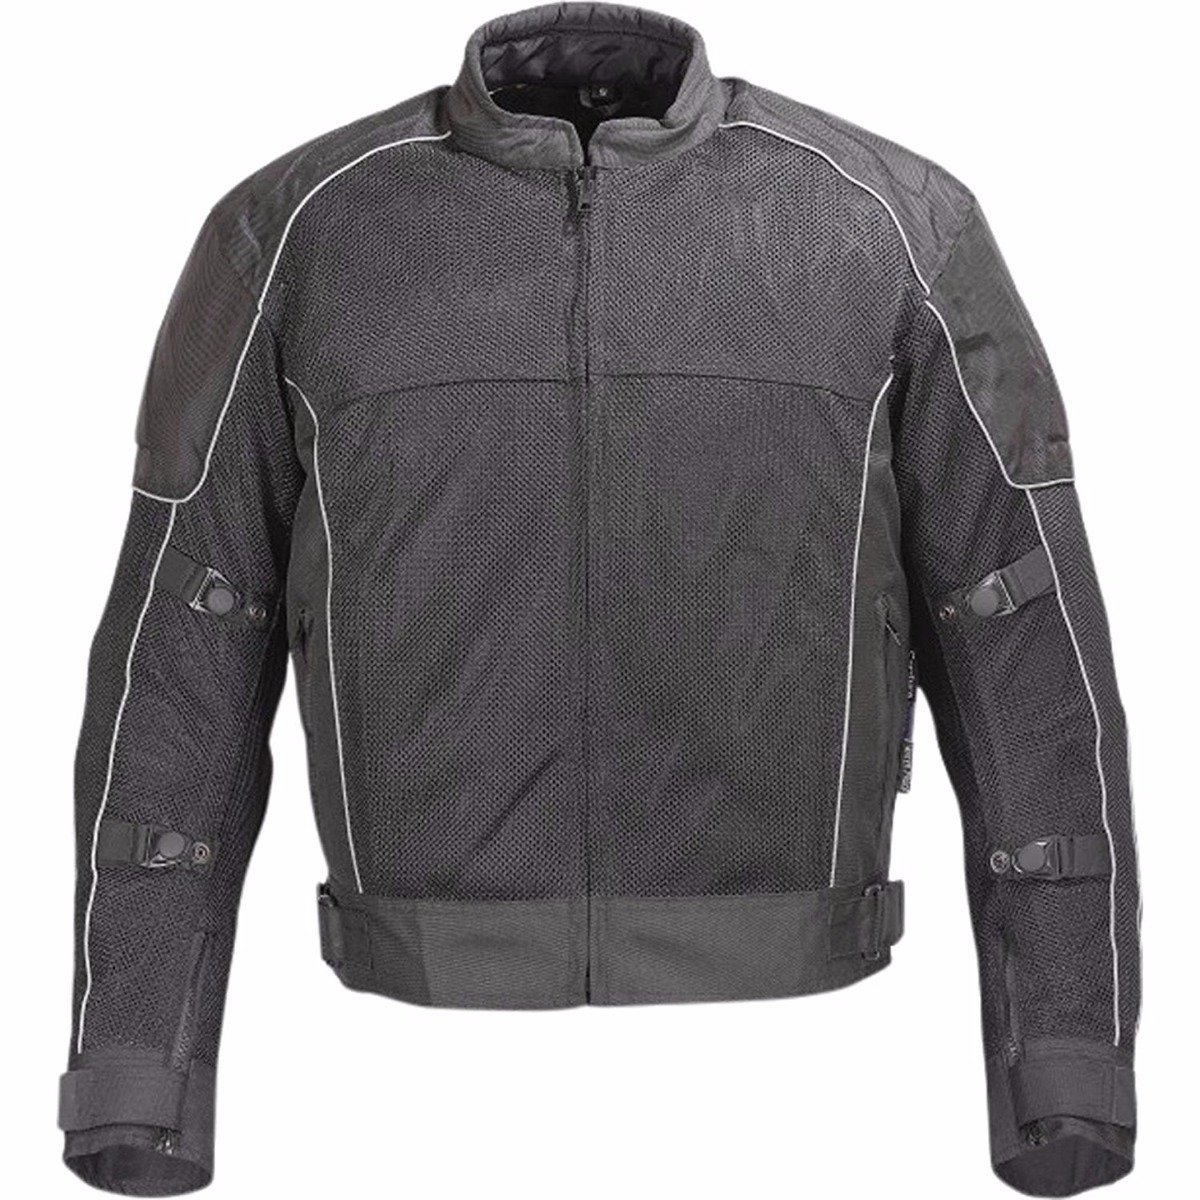 Sahara Mesh Motorcycle Jacket